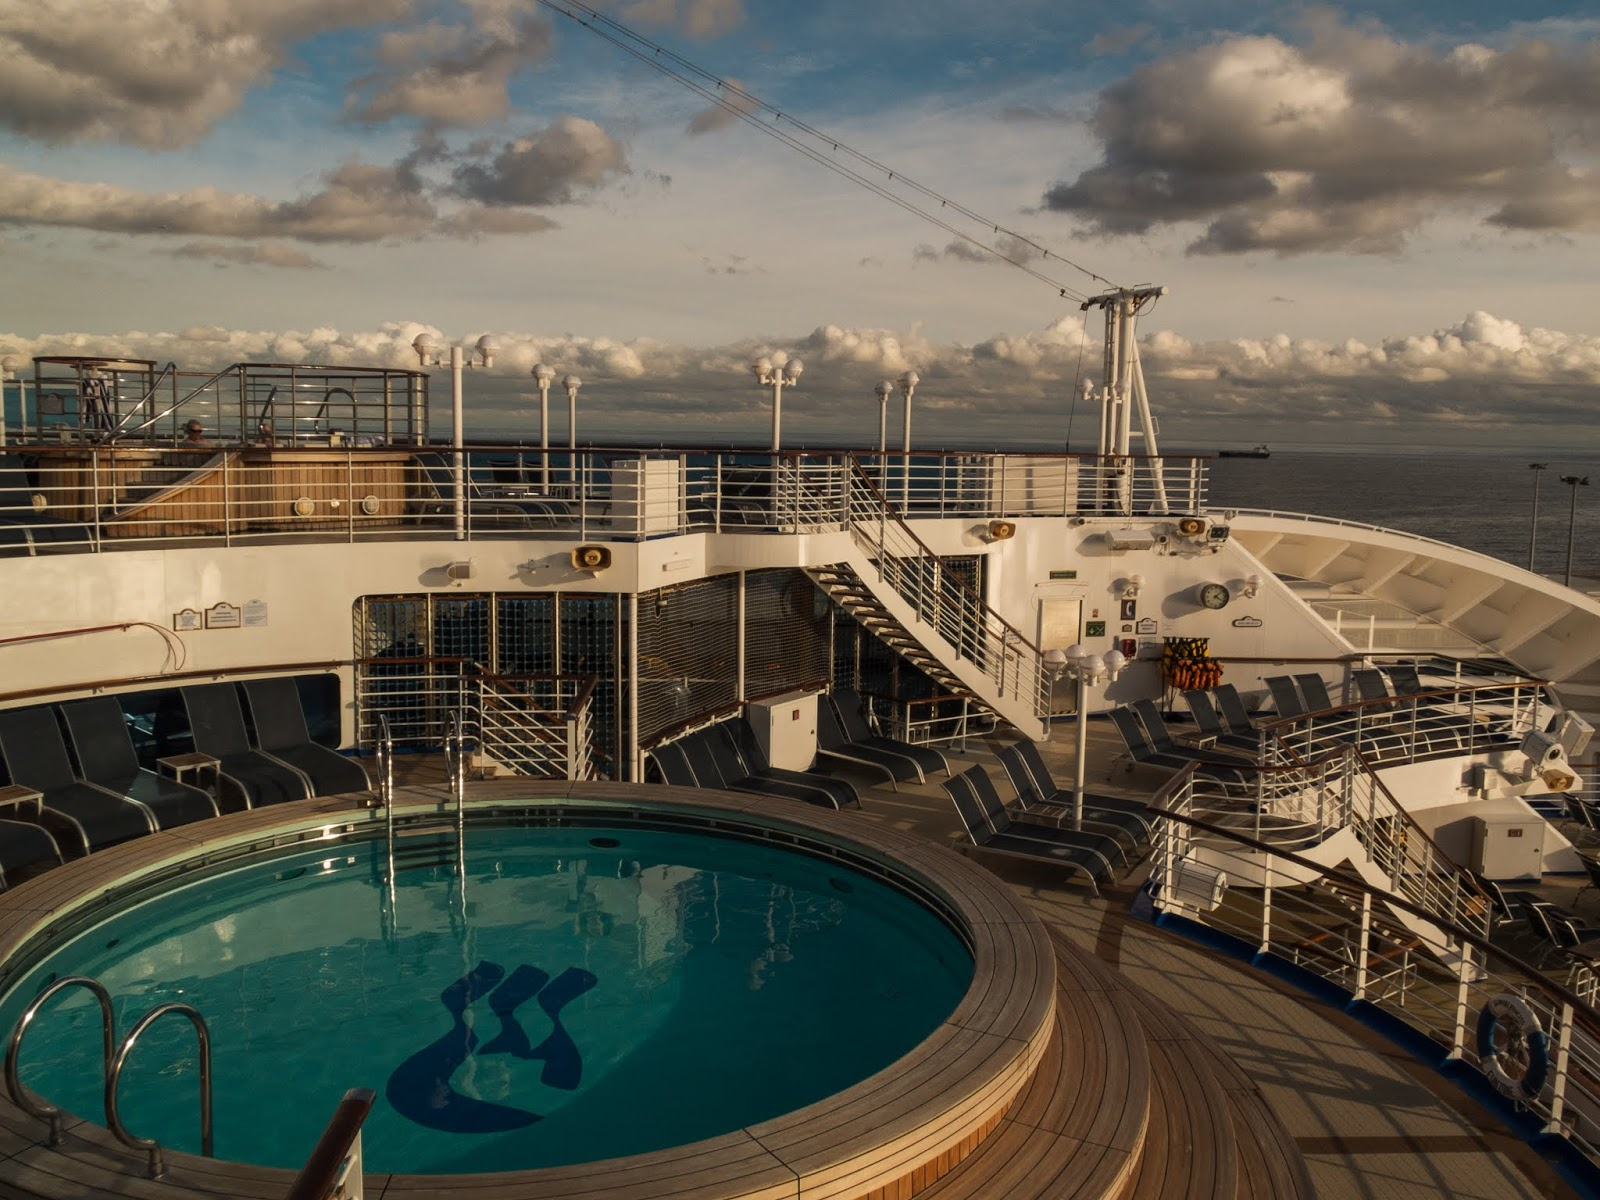 A round pool on a cruise ship on a sunny day.